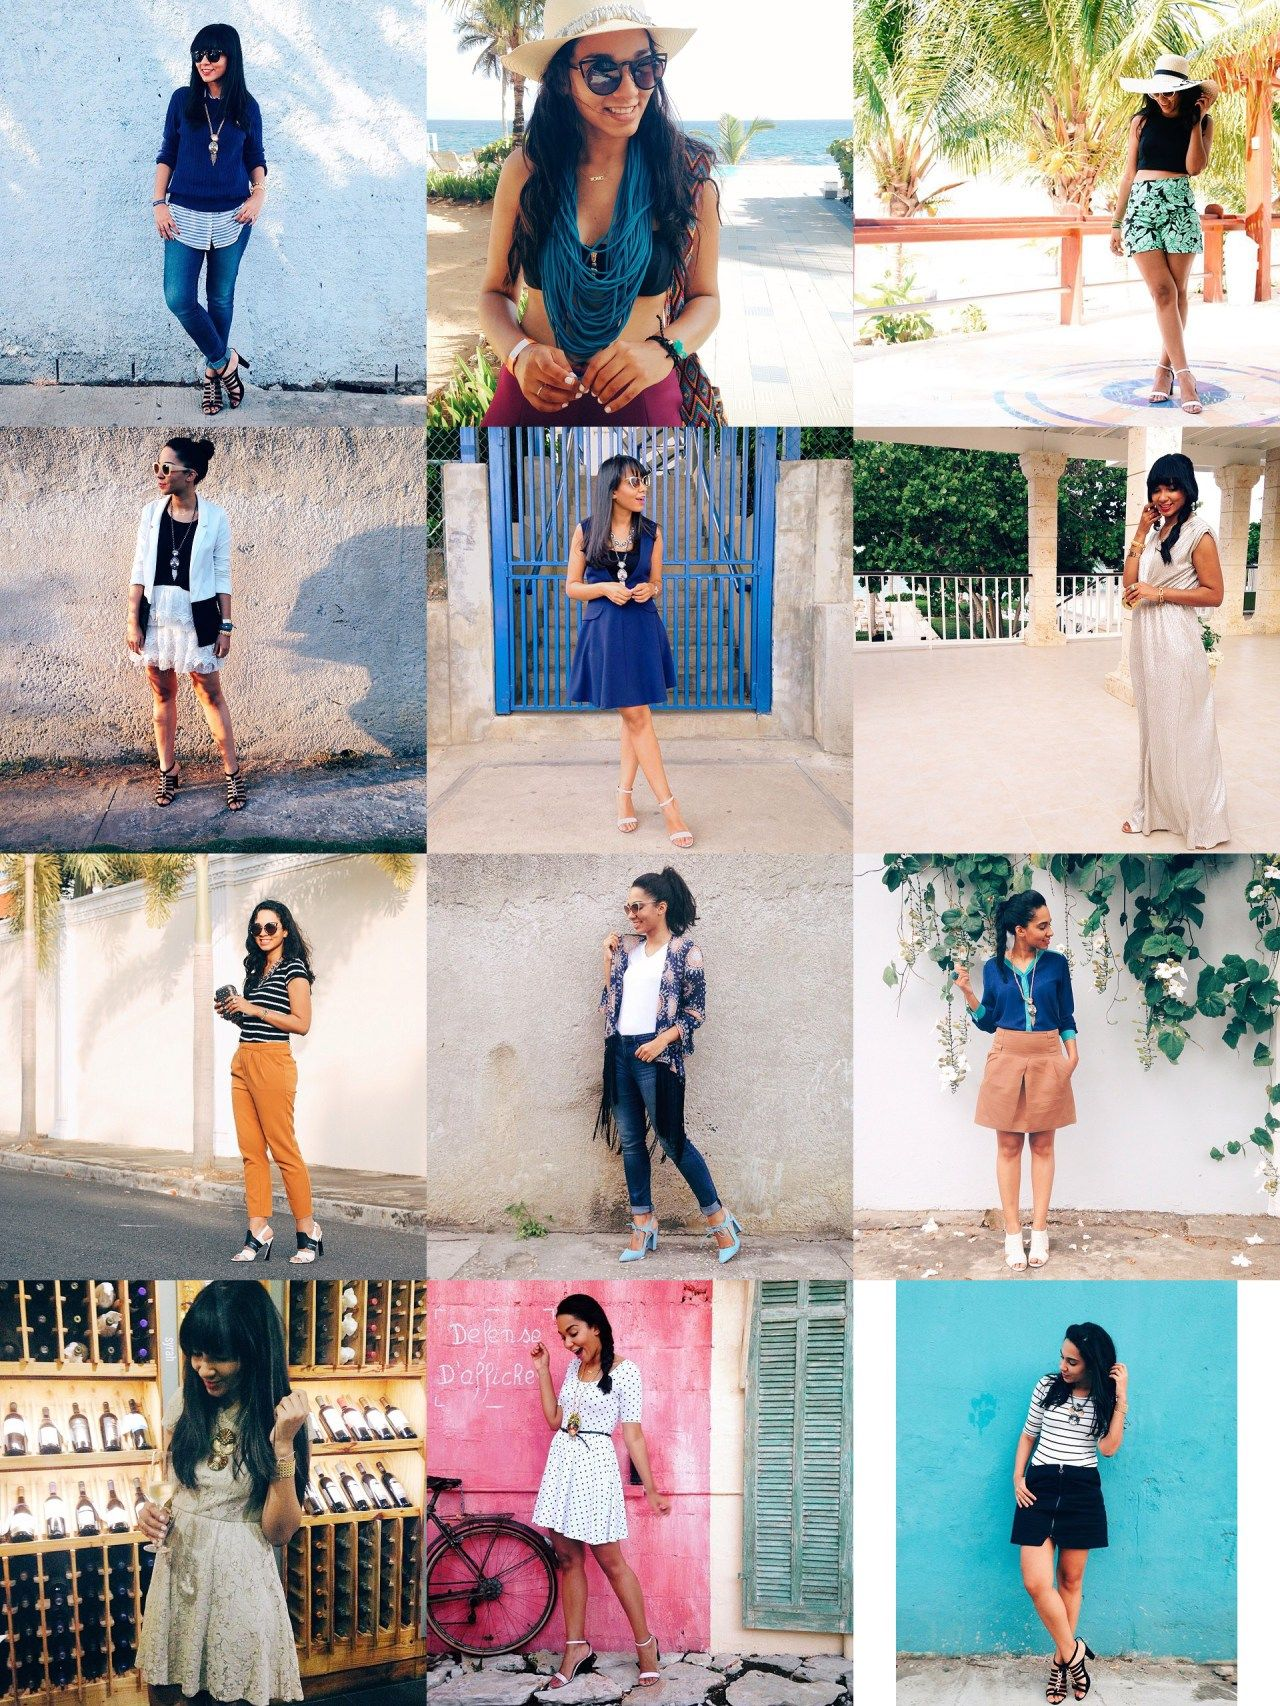 My Best #OOTD & What I Learned in 2015! - The Key ItemThe Key Item